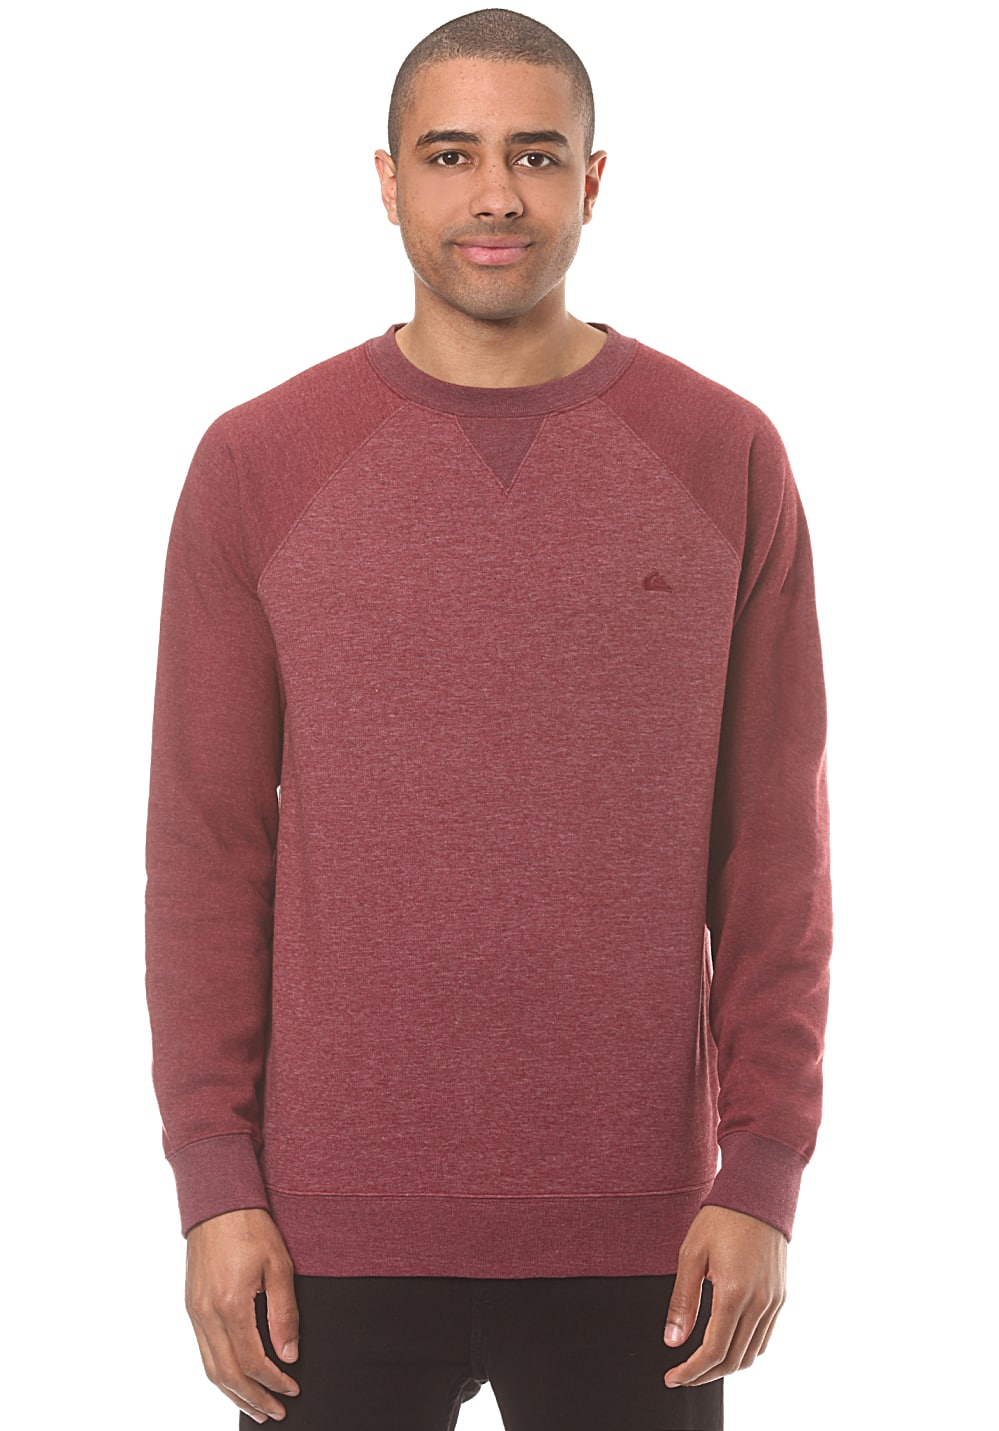 quiksilver everyday crew sweatshirt f r herren rot. Black Bedroom Furniture Sets. Home Design Ideas